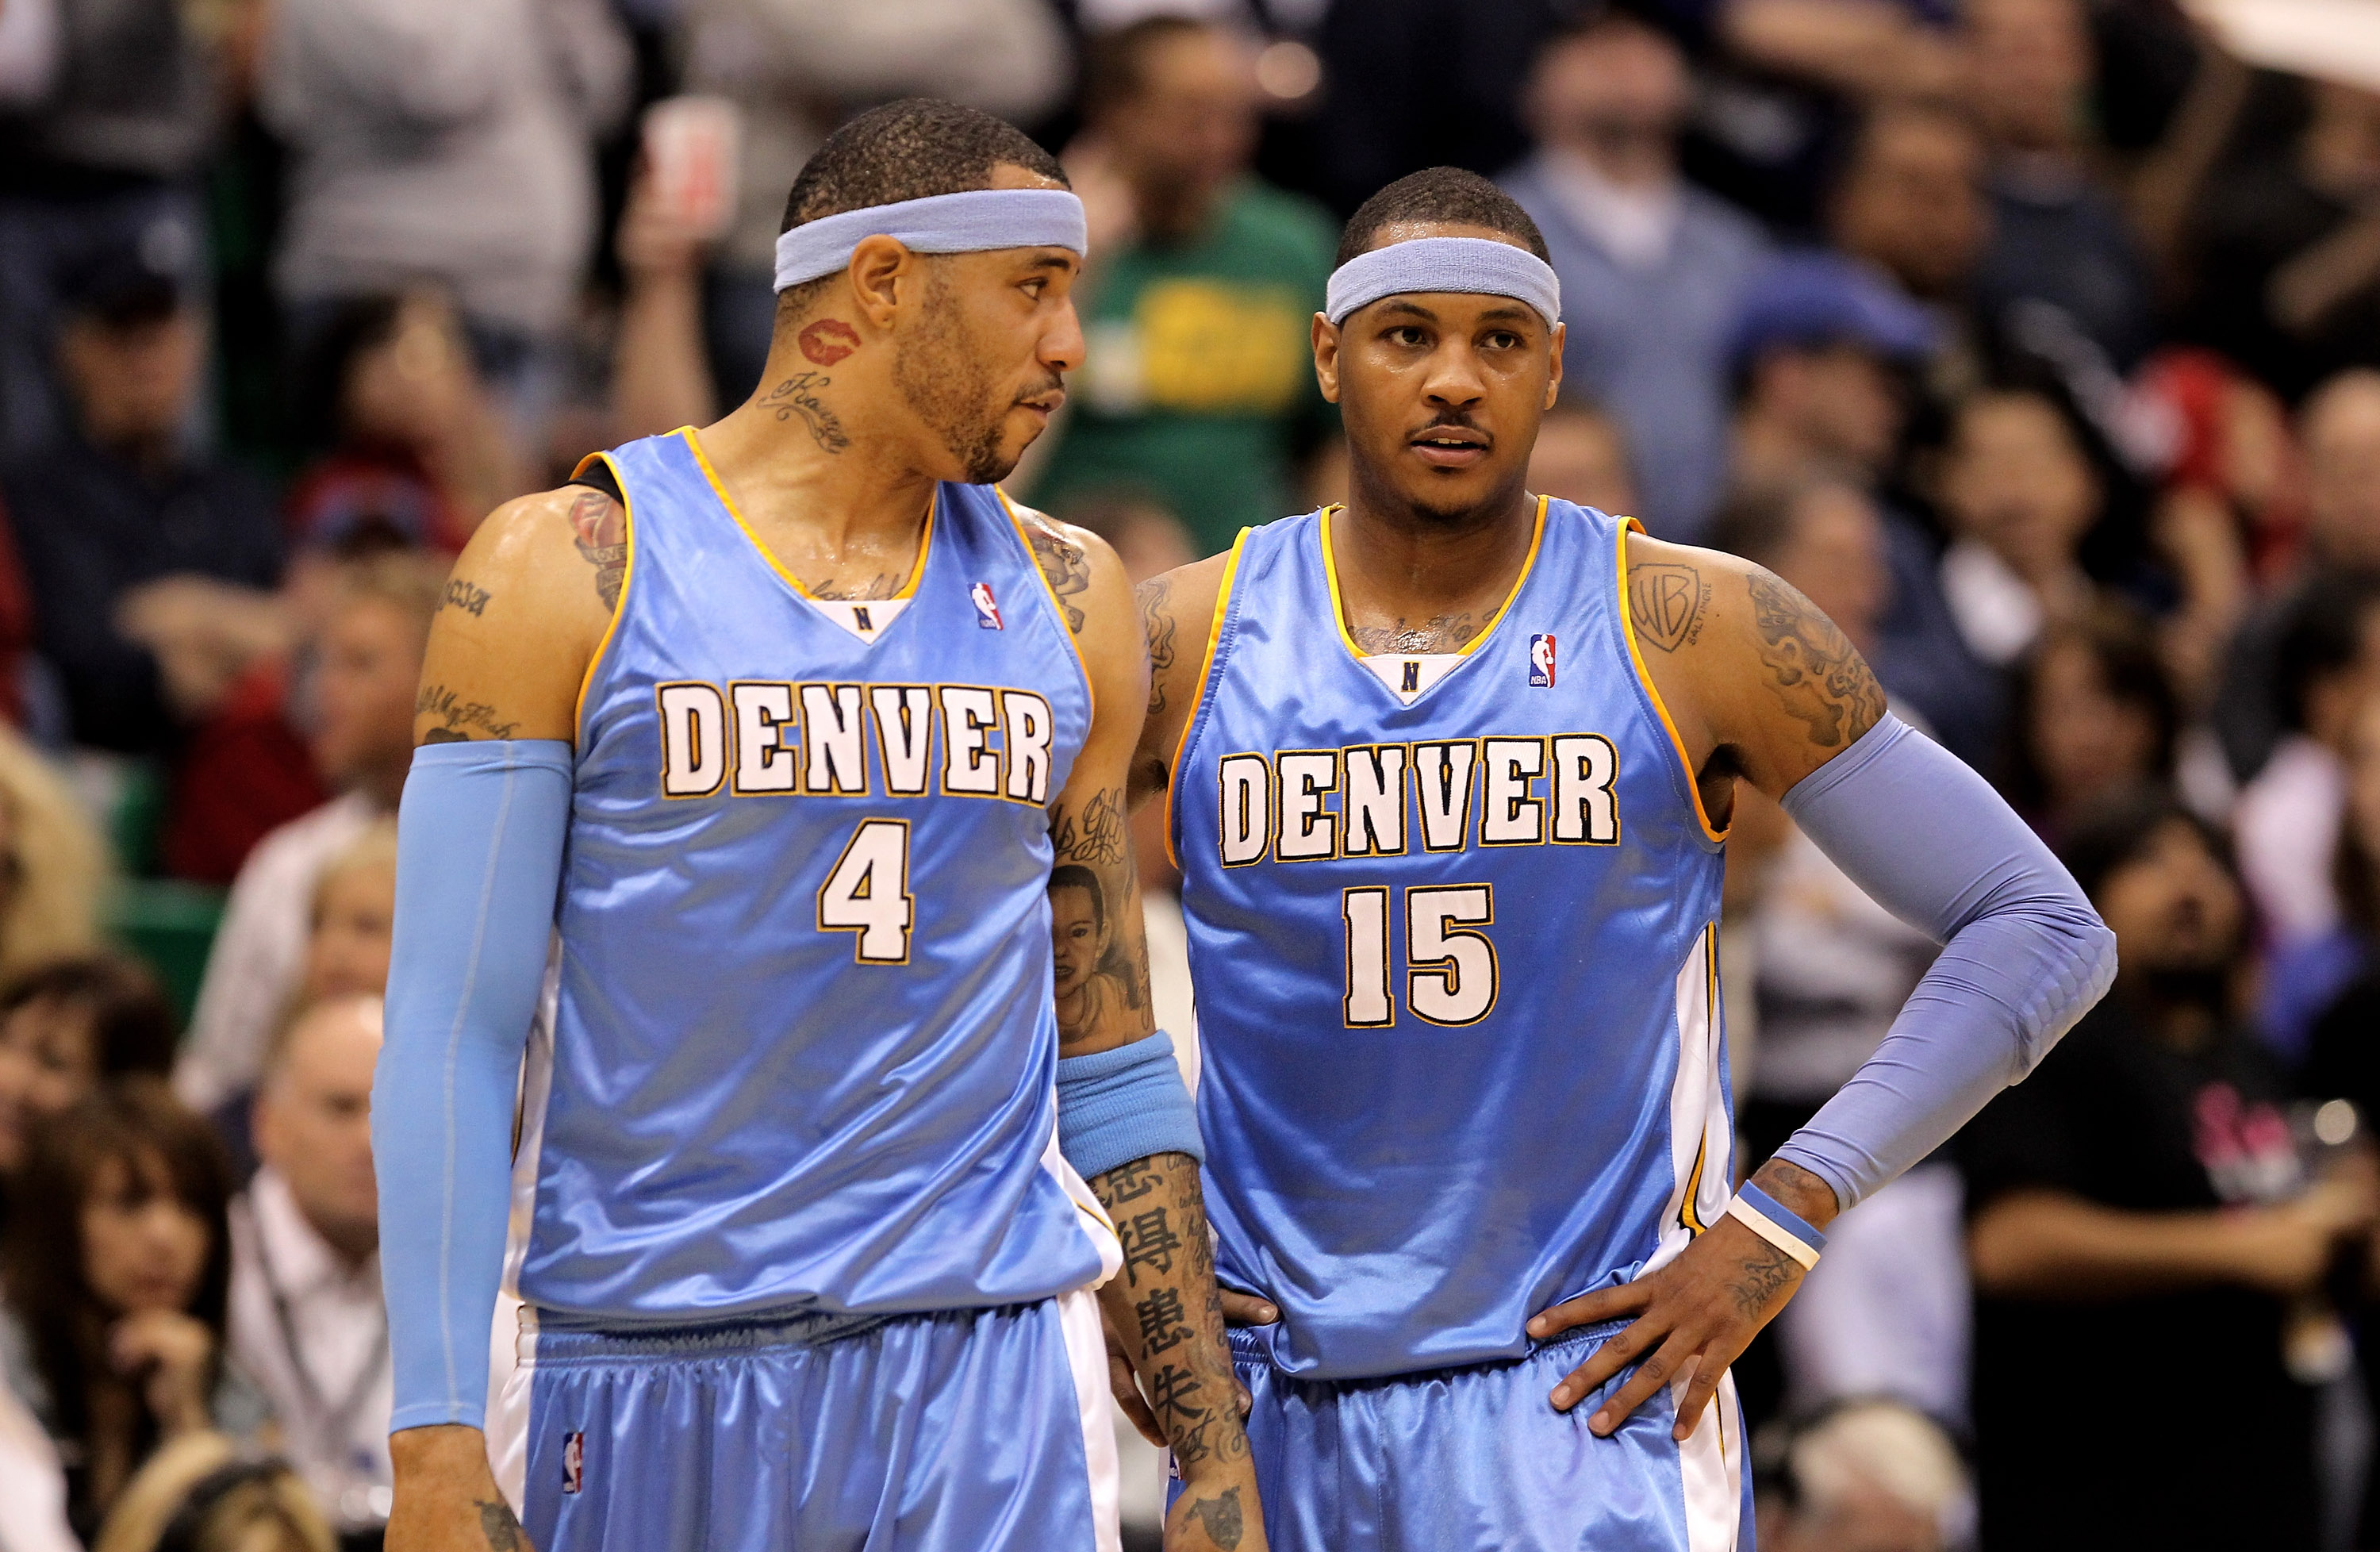 SALT LAKE CITY - APRIL 30:   Kenyon Martin #4 of the Denver Nuggets speaks to teammate Carmelo Anthony #15 during their loss to the Utah Jazz in Game Six of the Western Conference Quarterfinals of the 2010 NBA Playoffs at EnergySolutions Arena on April 30